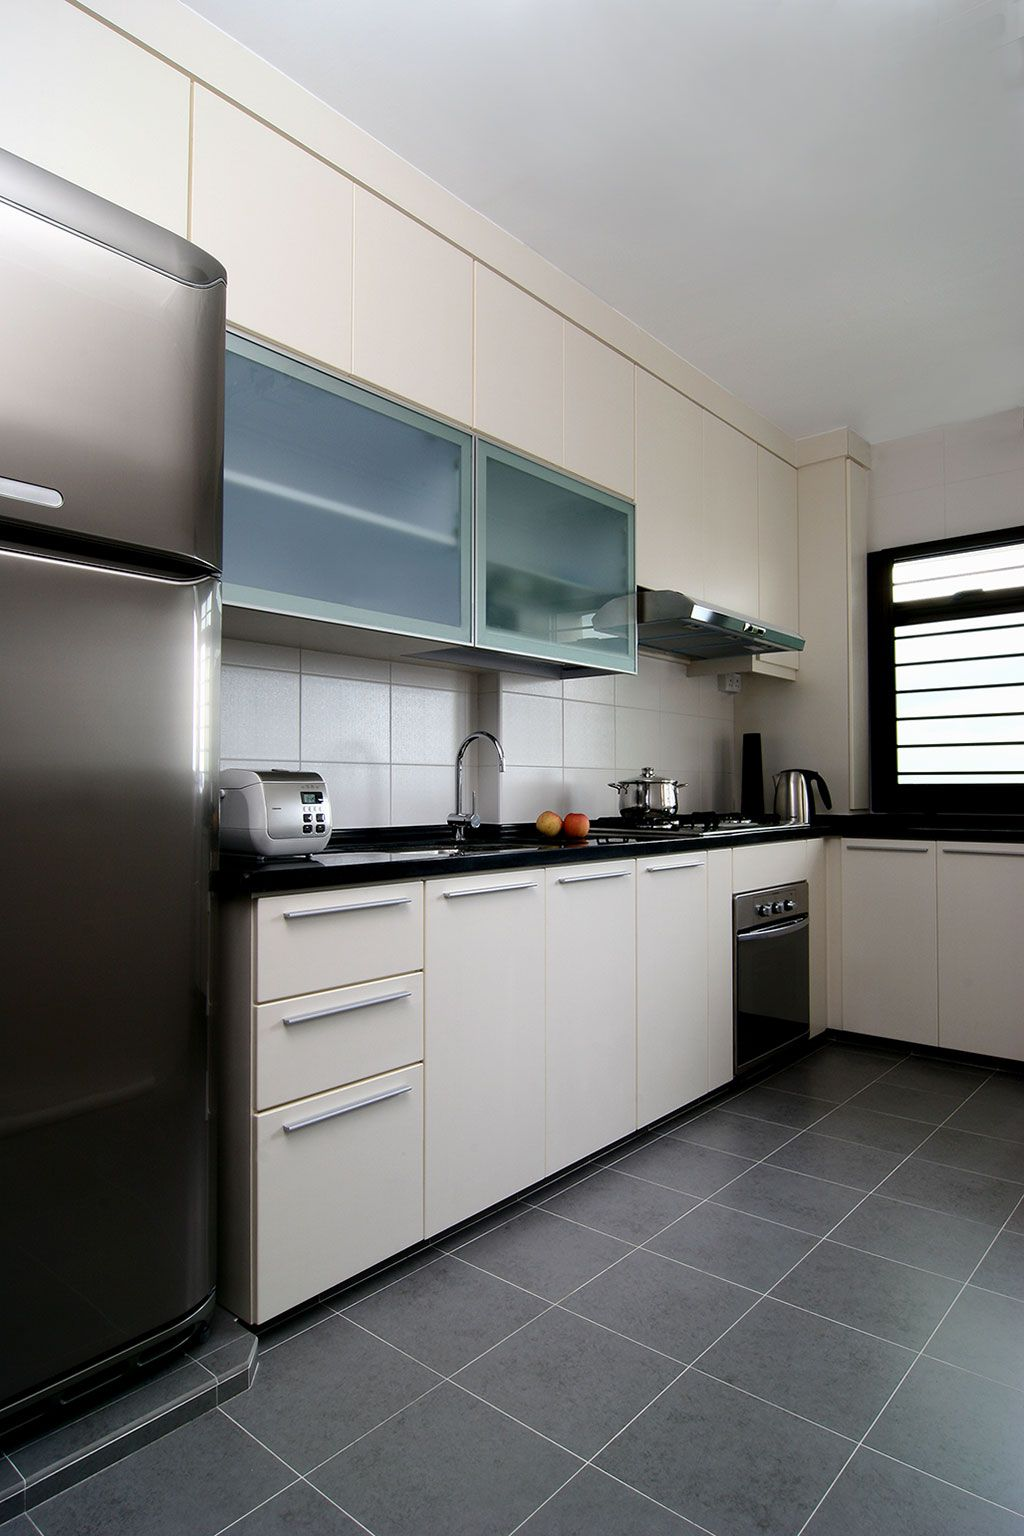 kitchen design singapore hdb flat. stirling hdb kitchen interior design 1 536 from Kitchen Cabinets Hdb Flats jpg 024 pixels